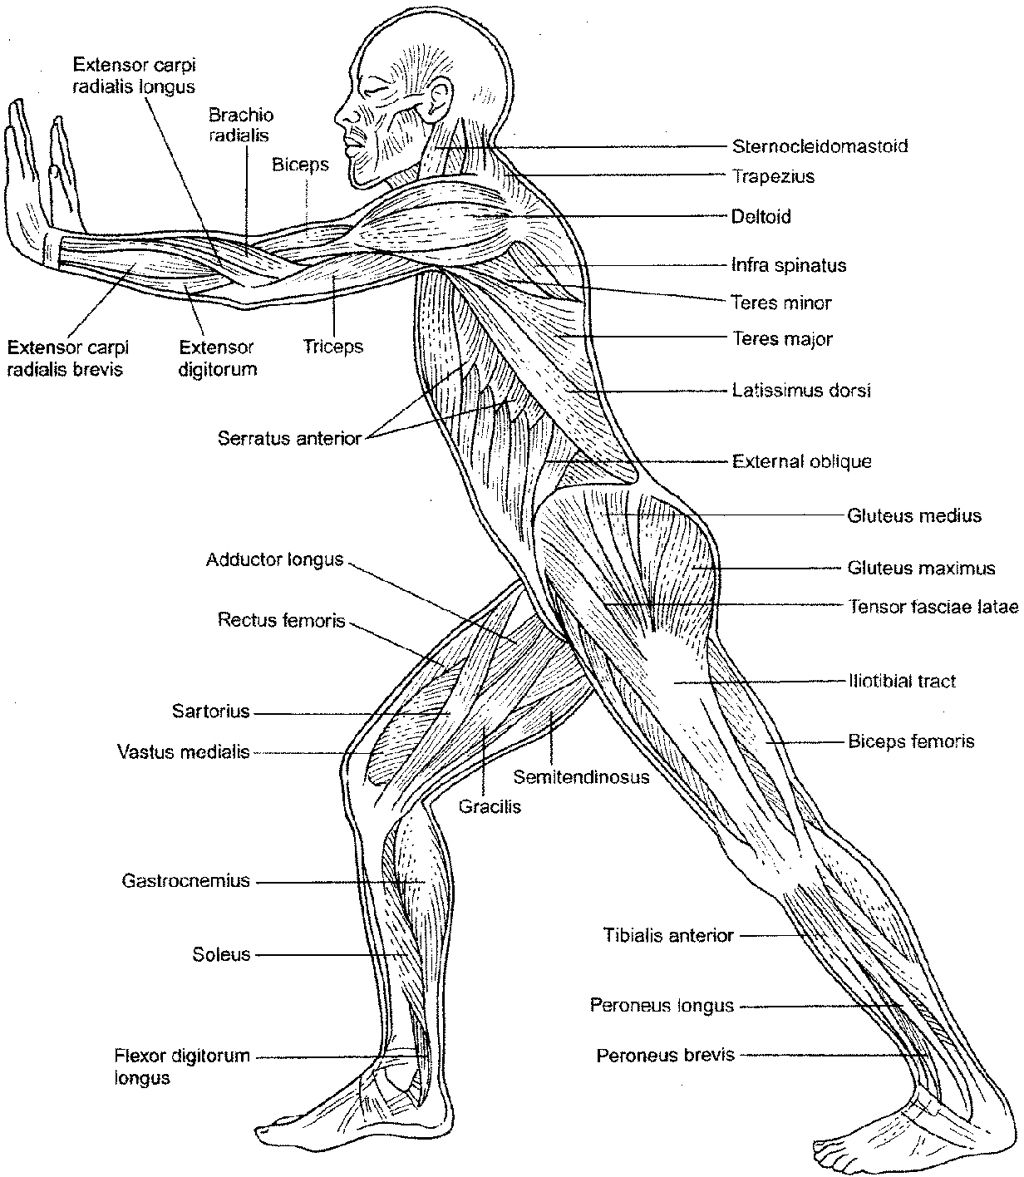 Worksheets Muscle Identification Worksheet muscle identification worksheet blank drawing google search pinterest abitlikethis